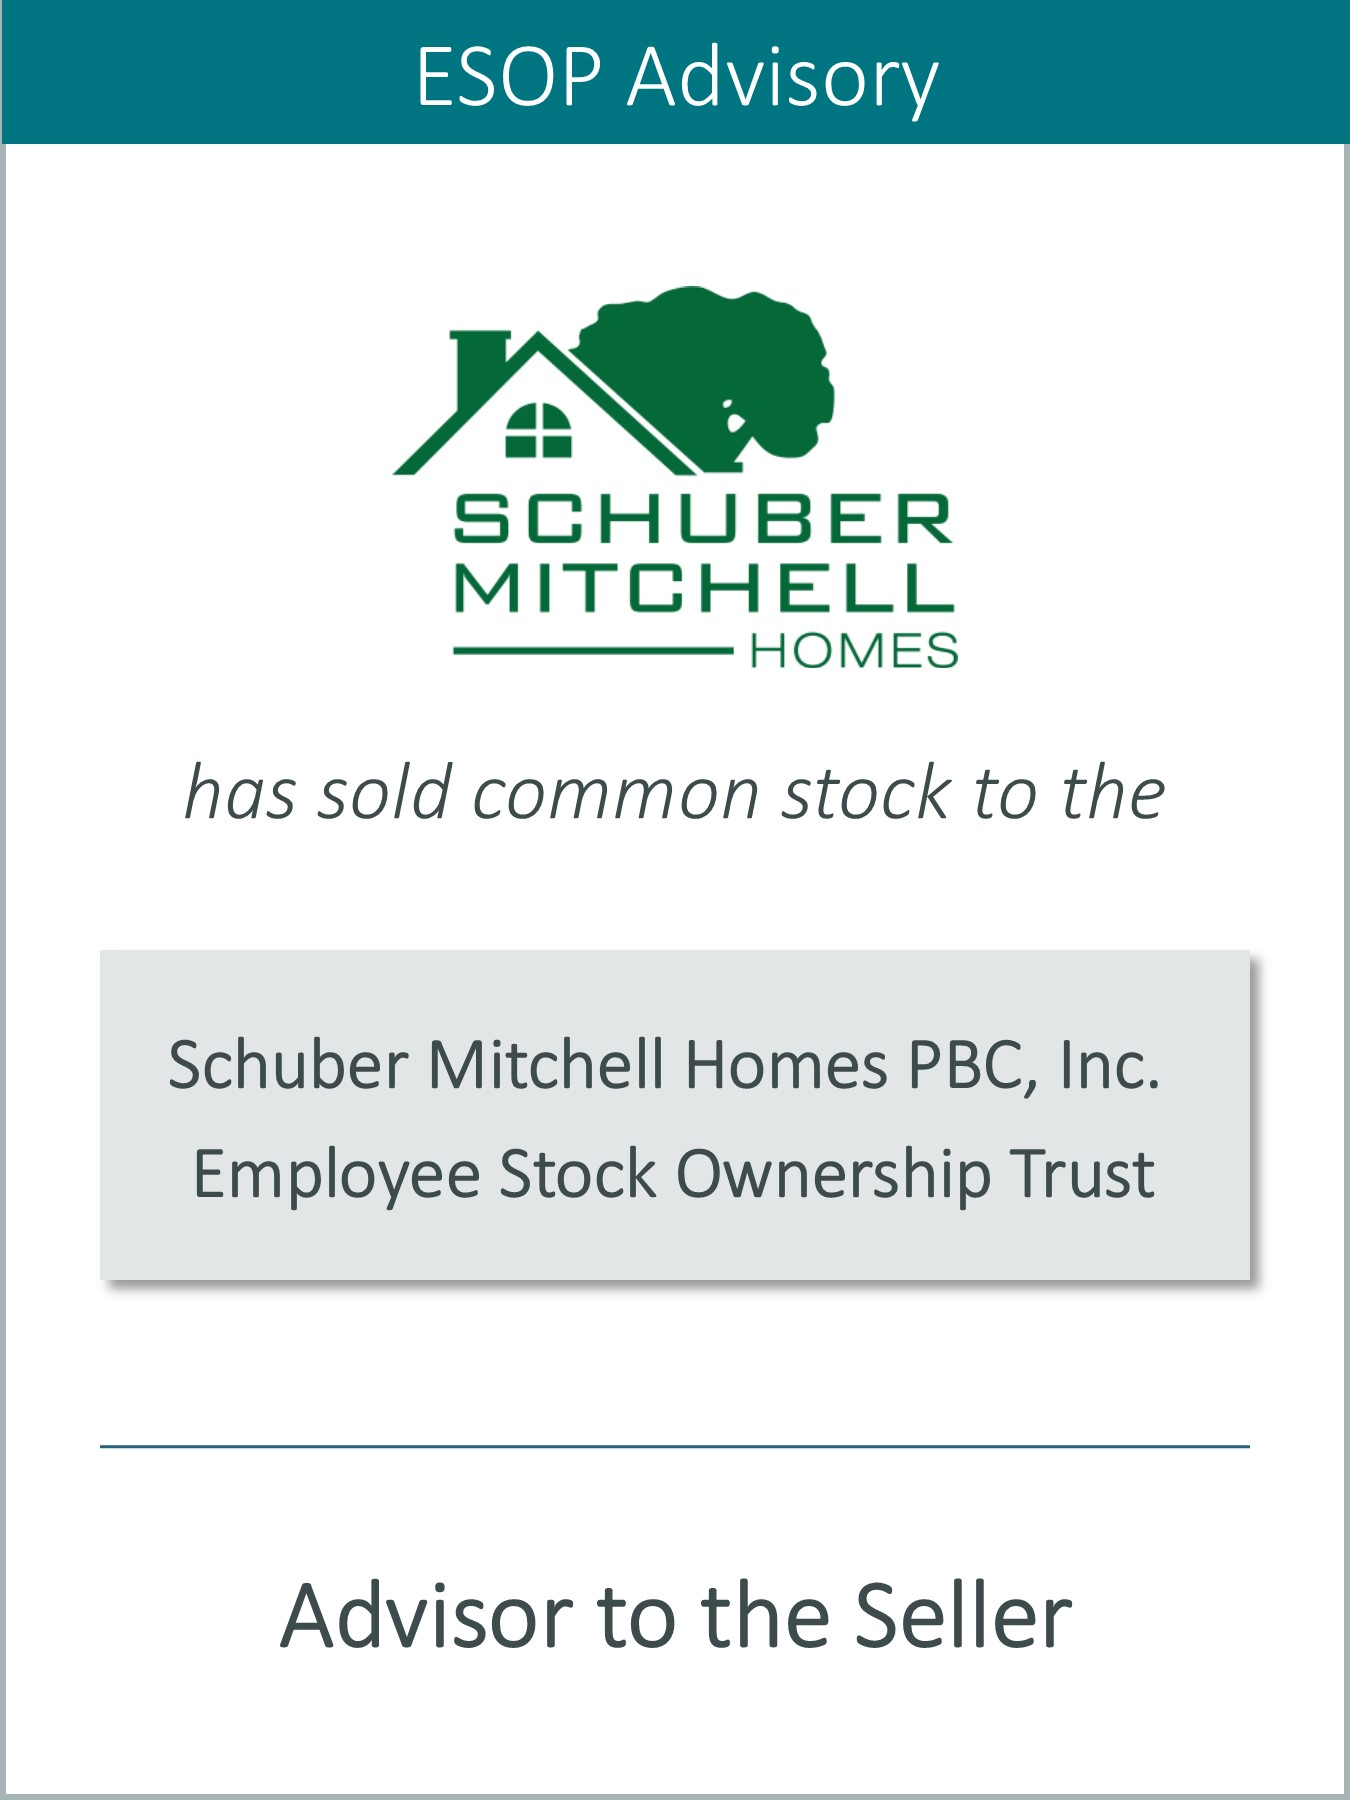 Prairie is Pleased to Announce the Sale of Schuber Mitchell Homes PBC, Inc. to an Employee Stock Ownership Plan